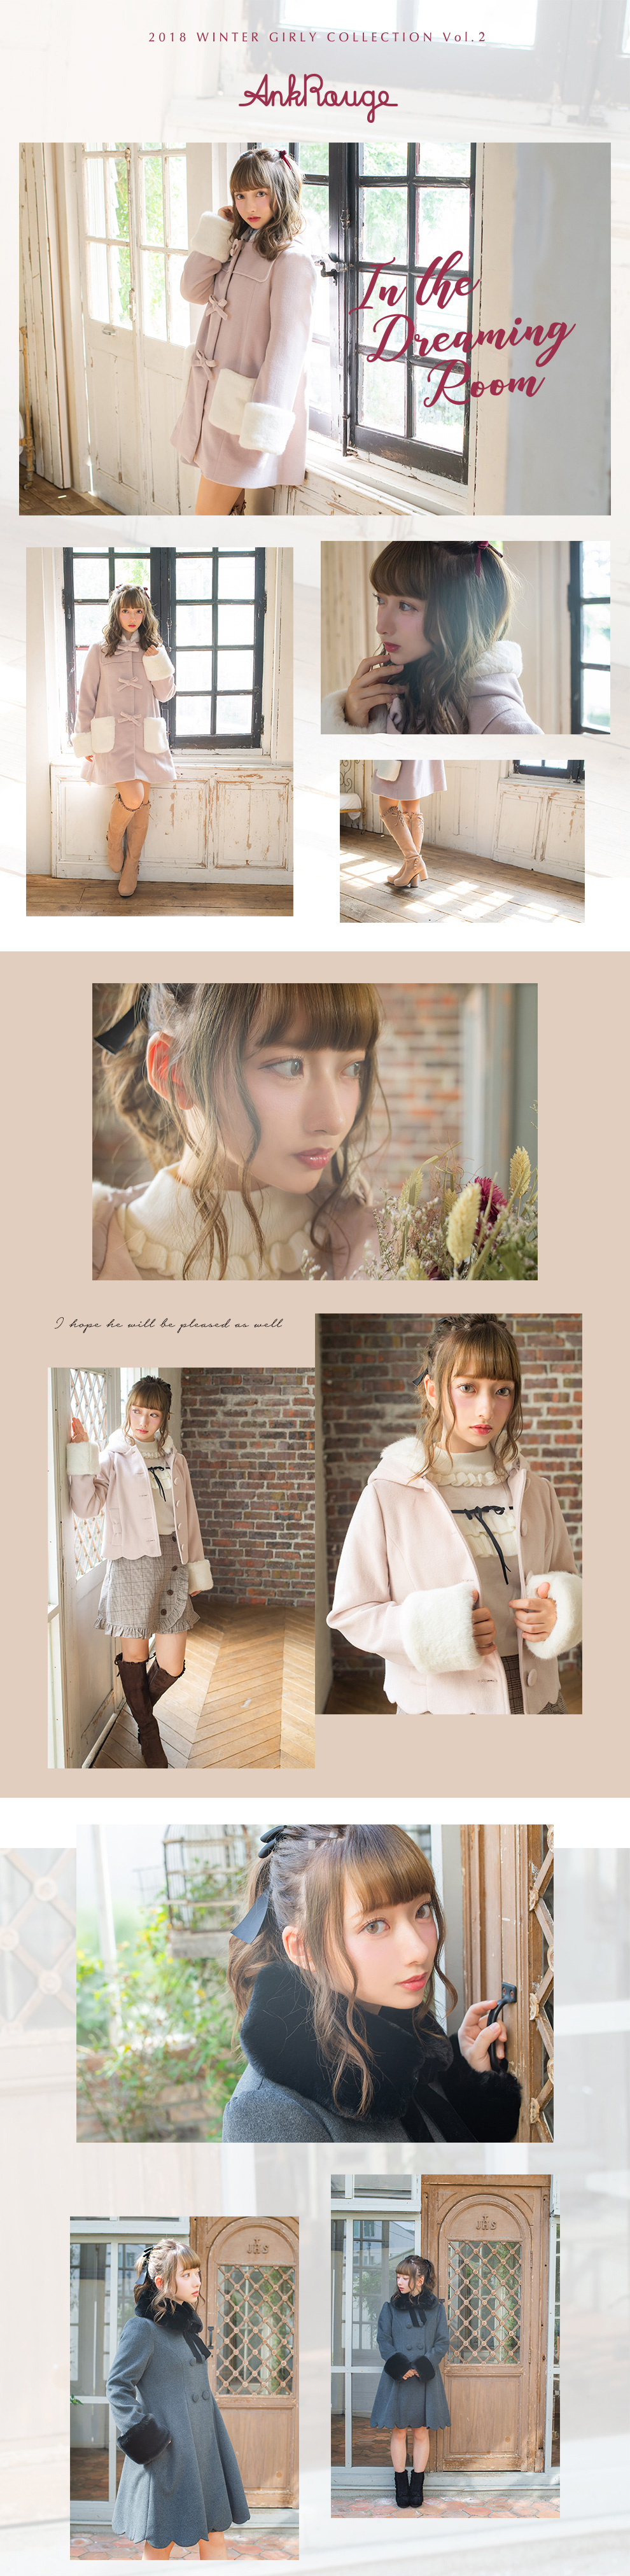 2018 WINTER GIRLY COLLECTION Vol.2